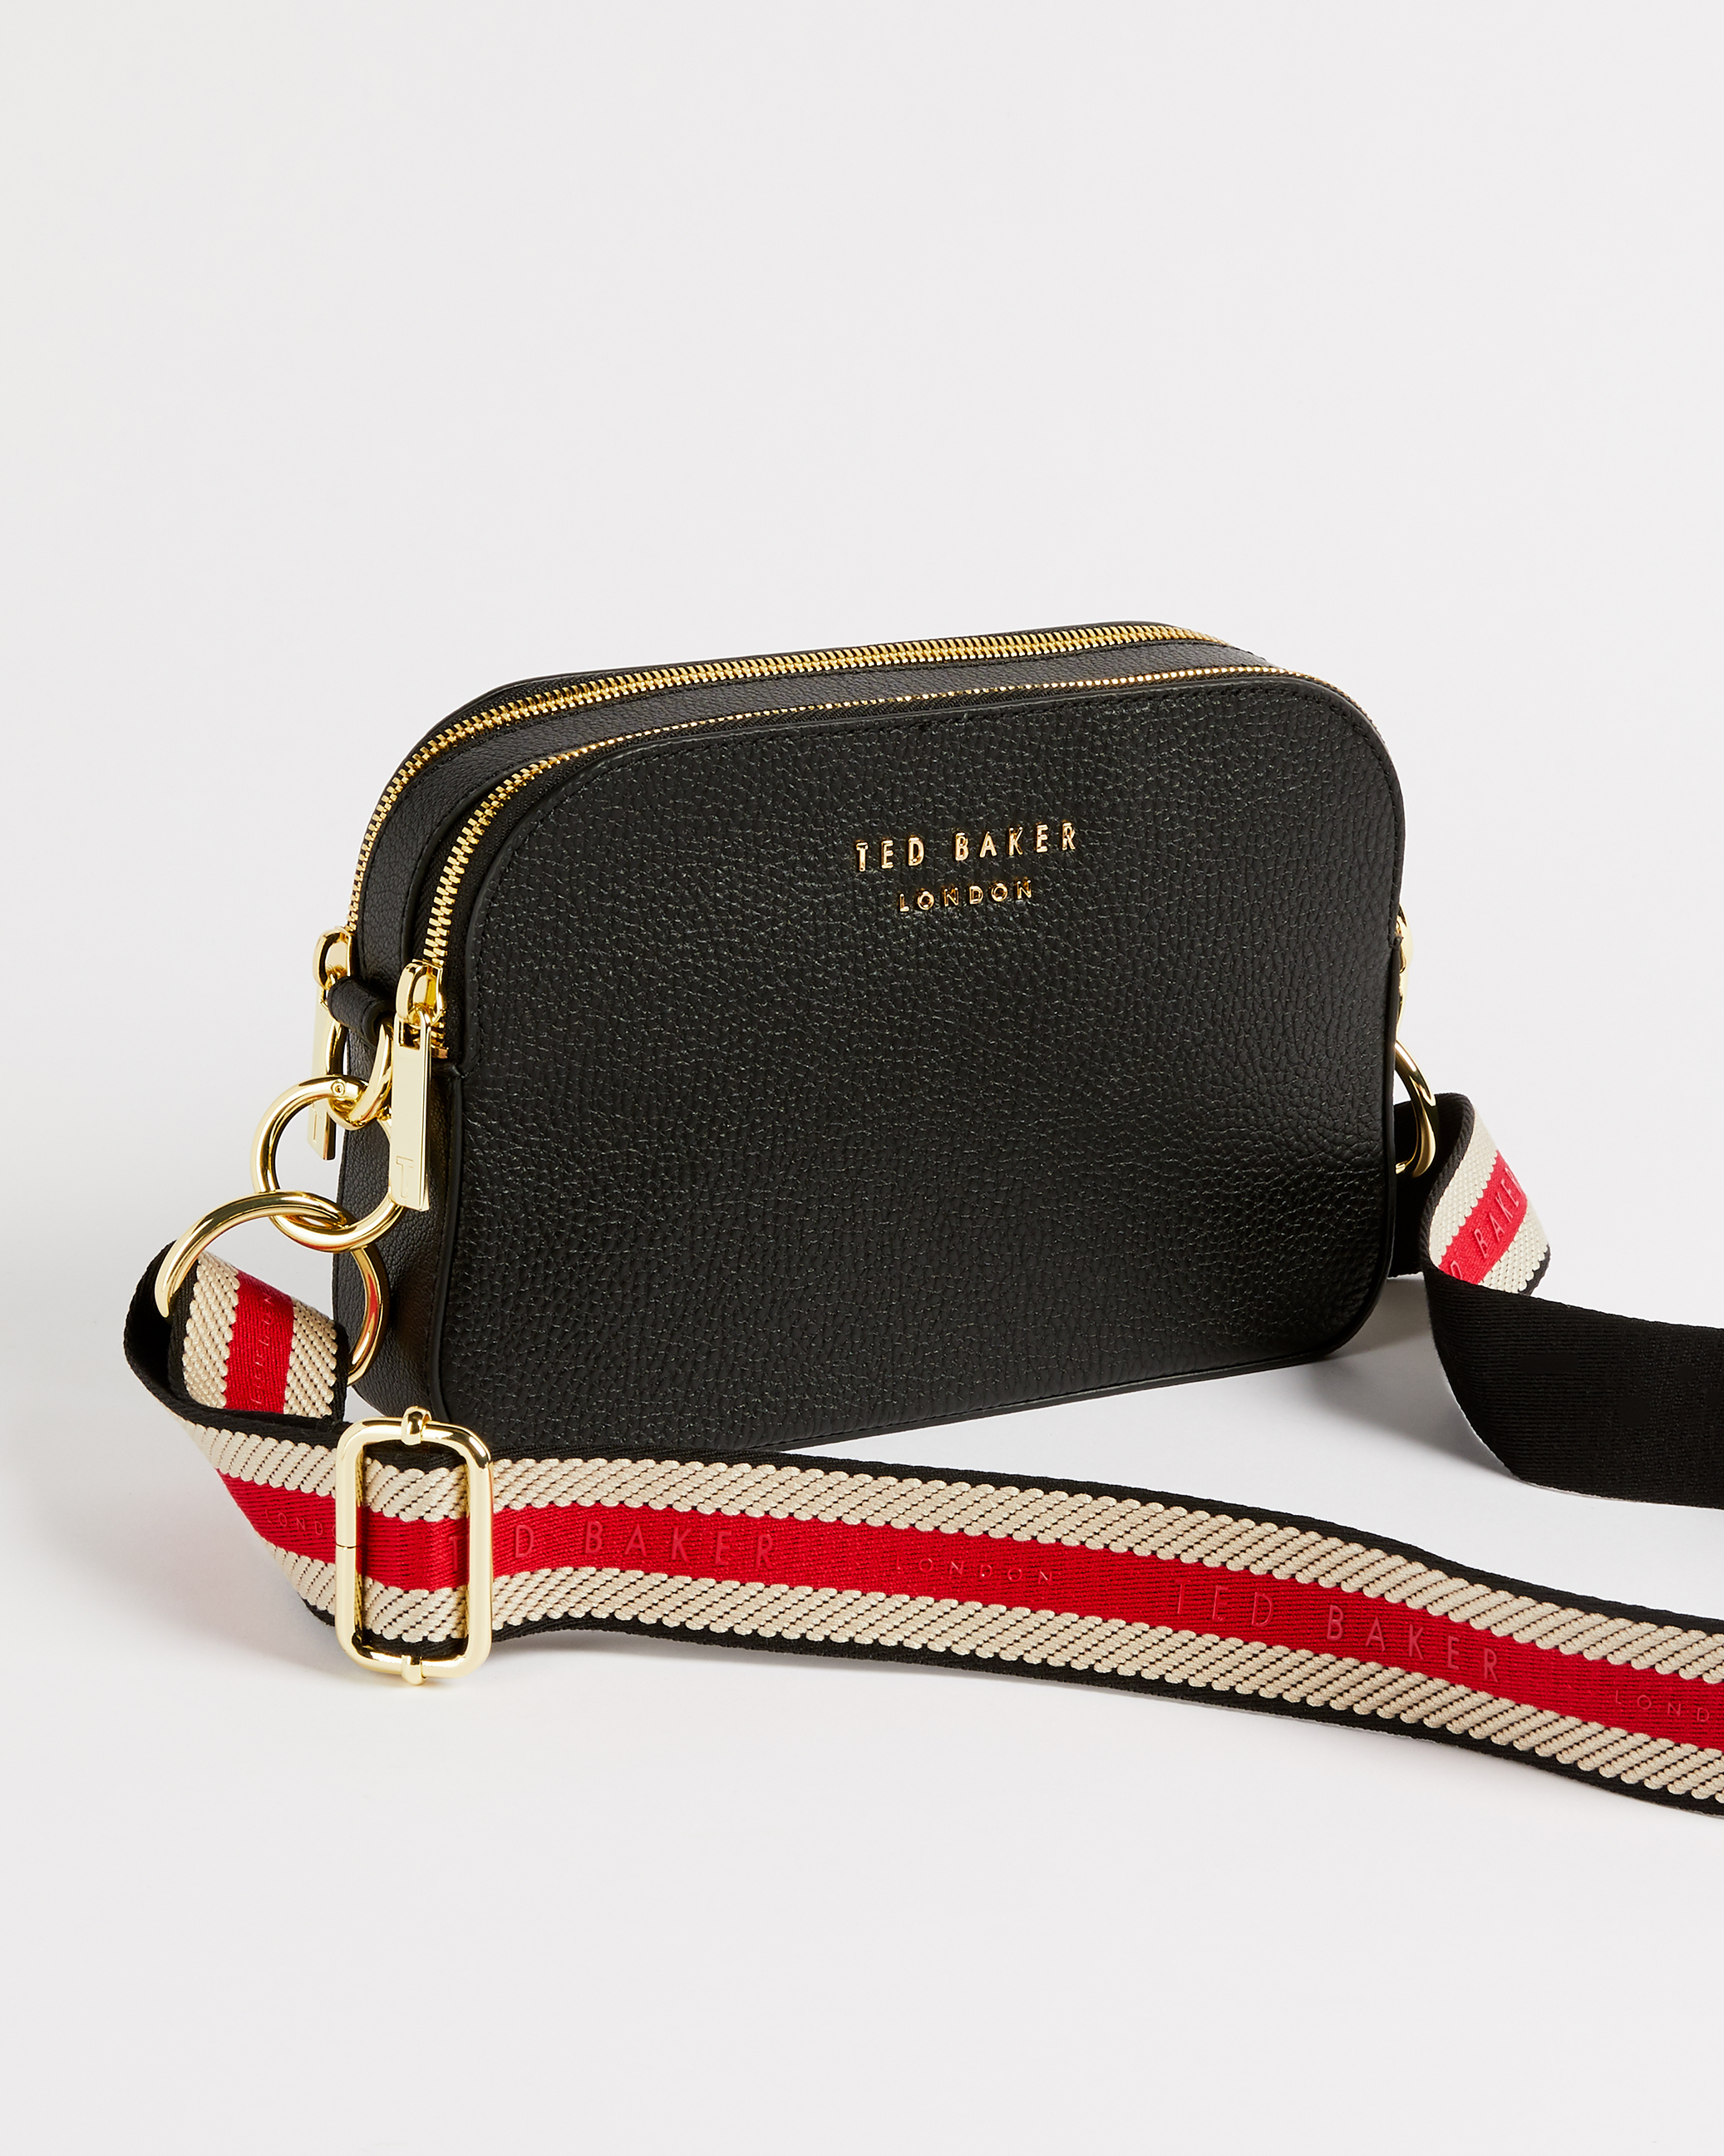 Leather Webbing Strap Camera Bag Black Cross Body Bags Ted Baker Row